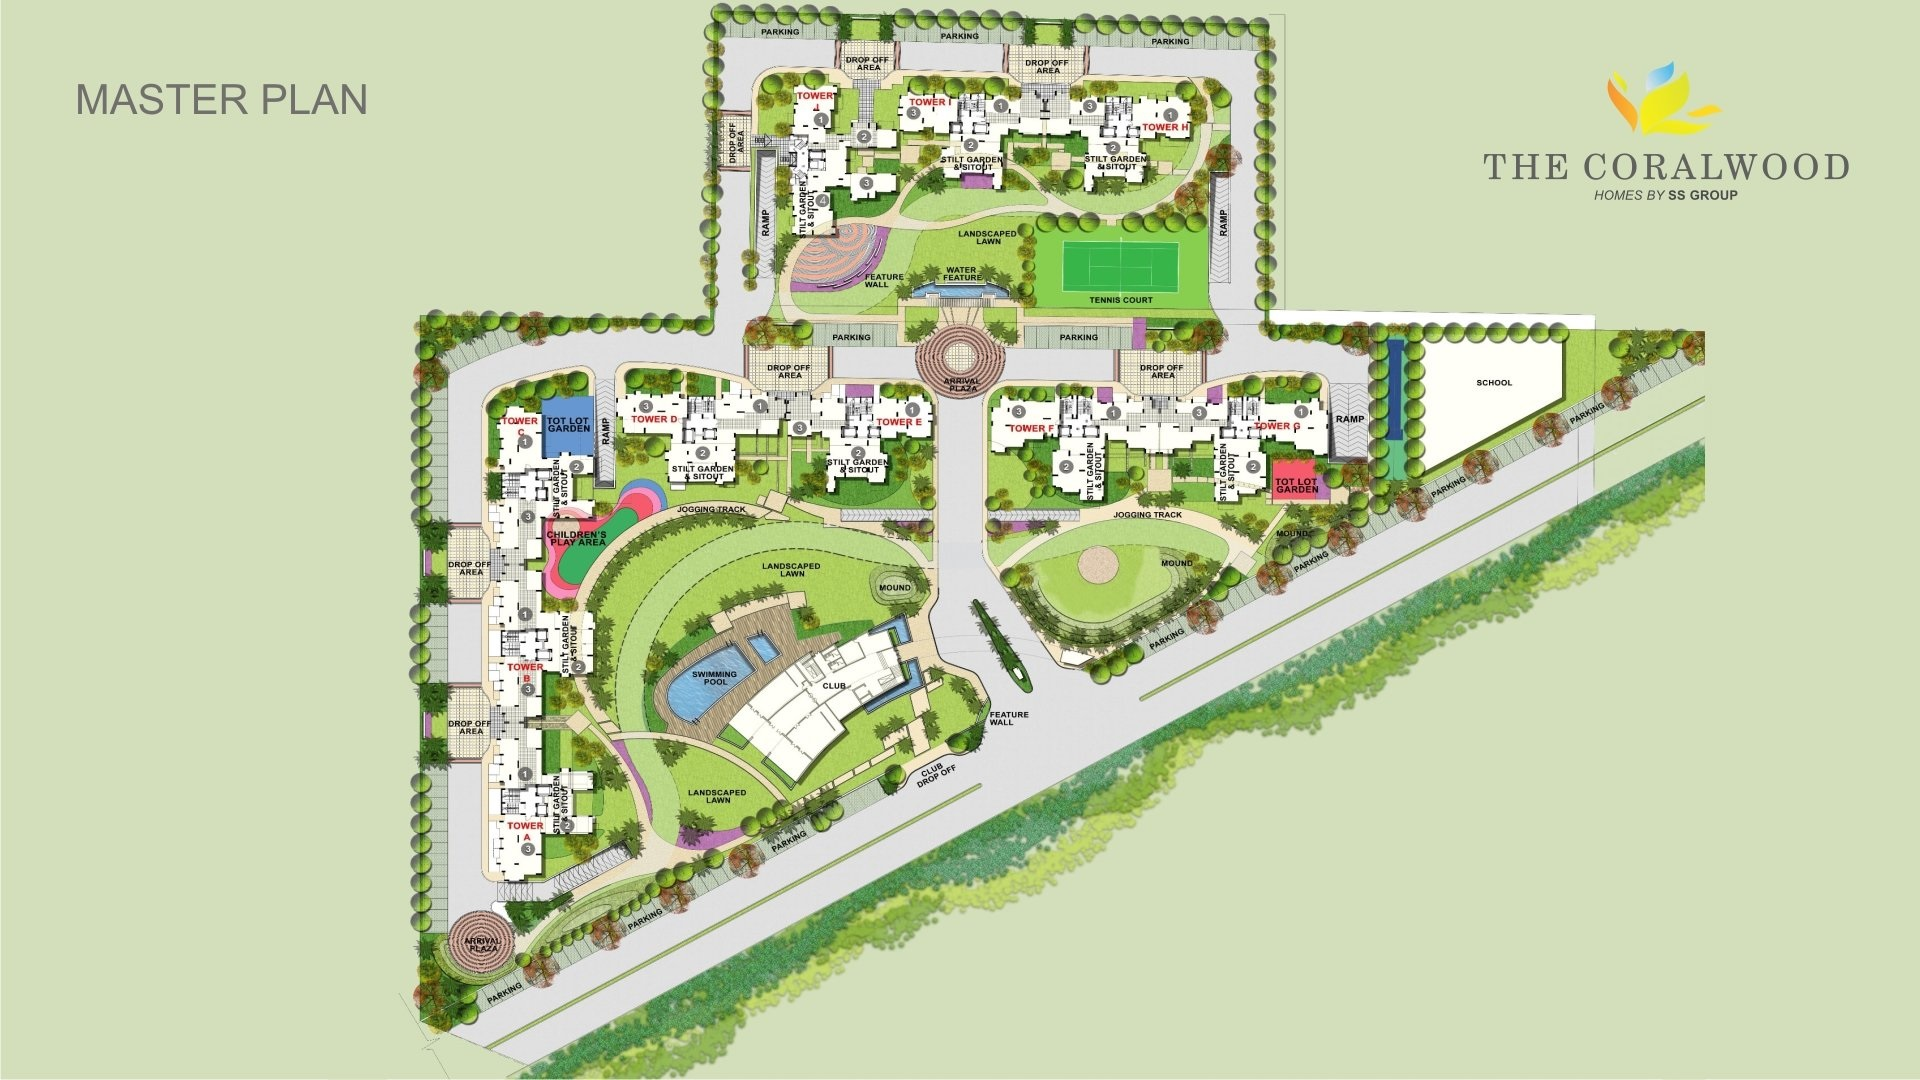 ss the coralwood master plan image7